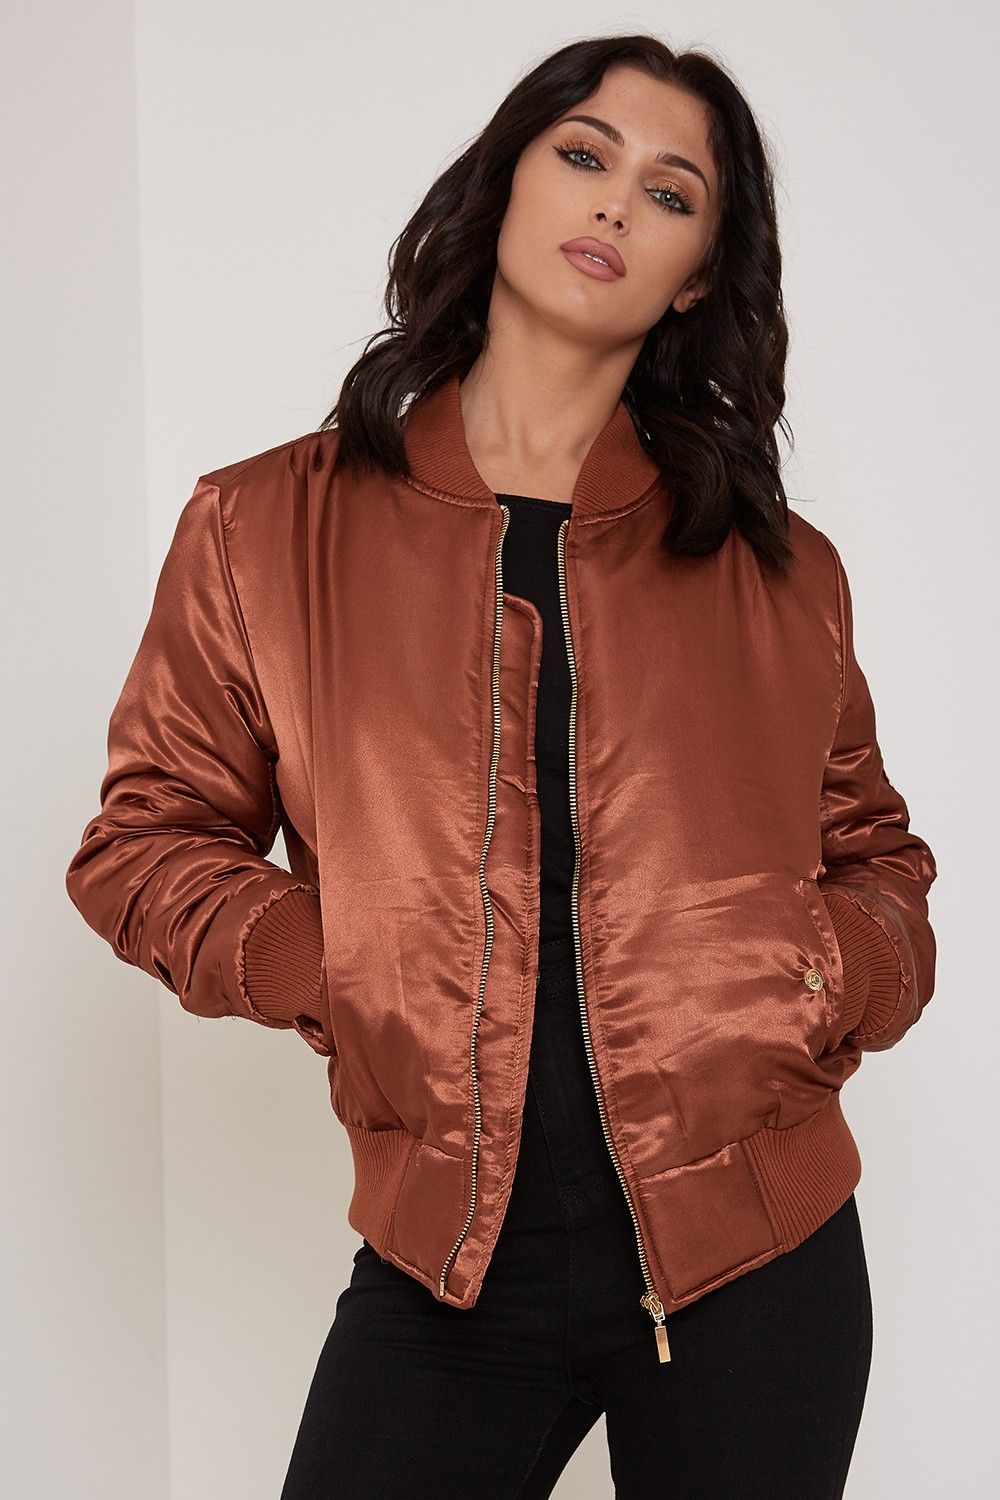 Squad Goals Satin Unpadded Bomber Jacket Pearl - Coats & Jackets ...